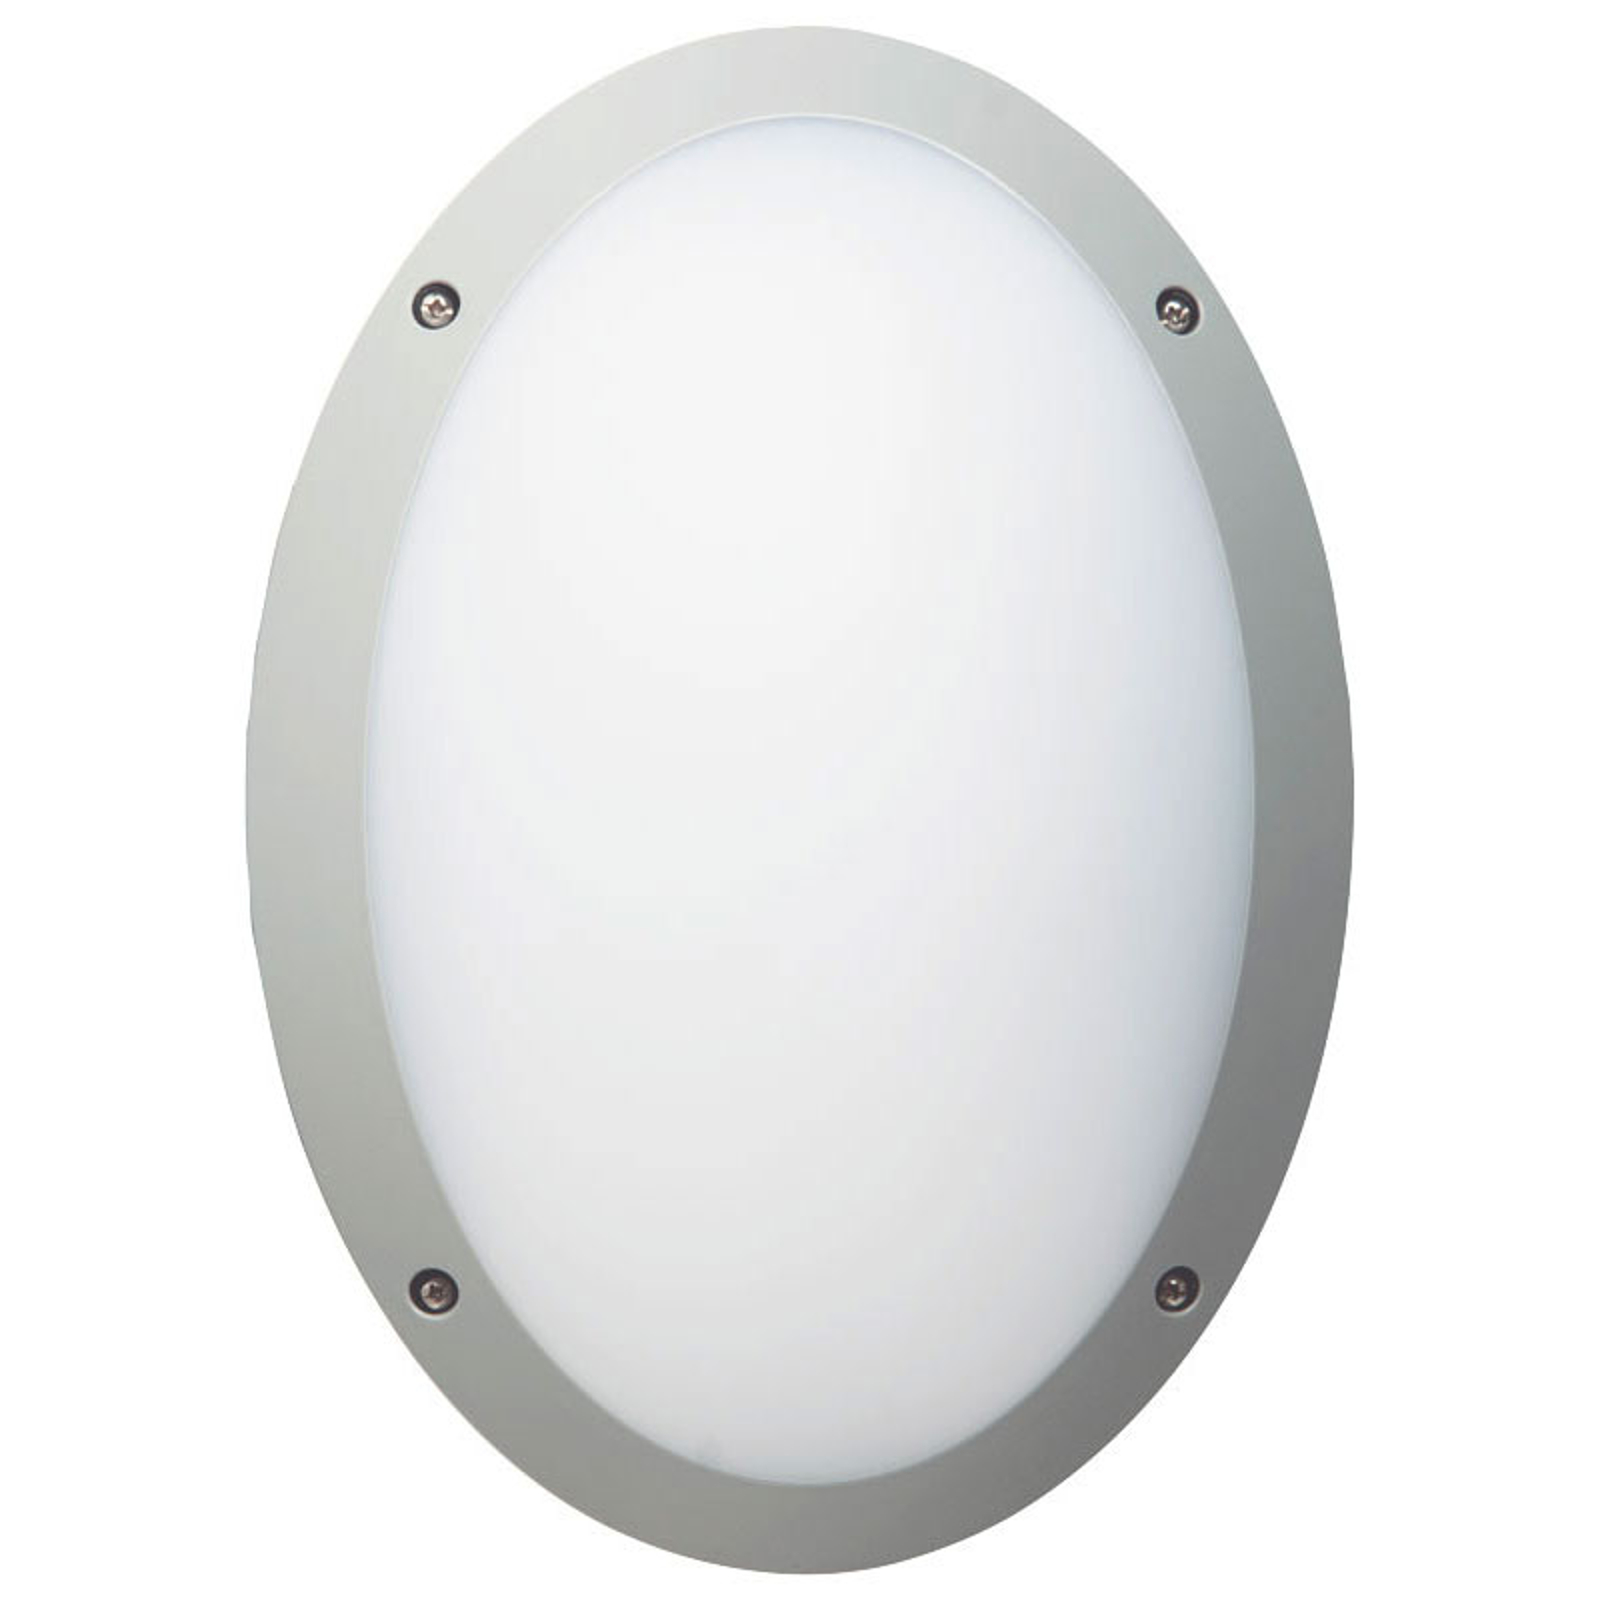 LED plafondlamp Fonda in ovale vorm met IP66